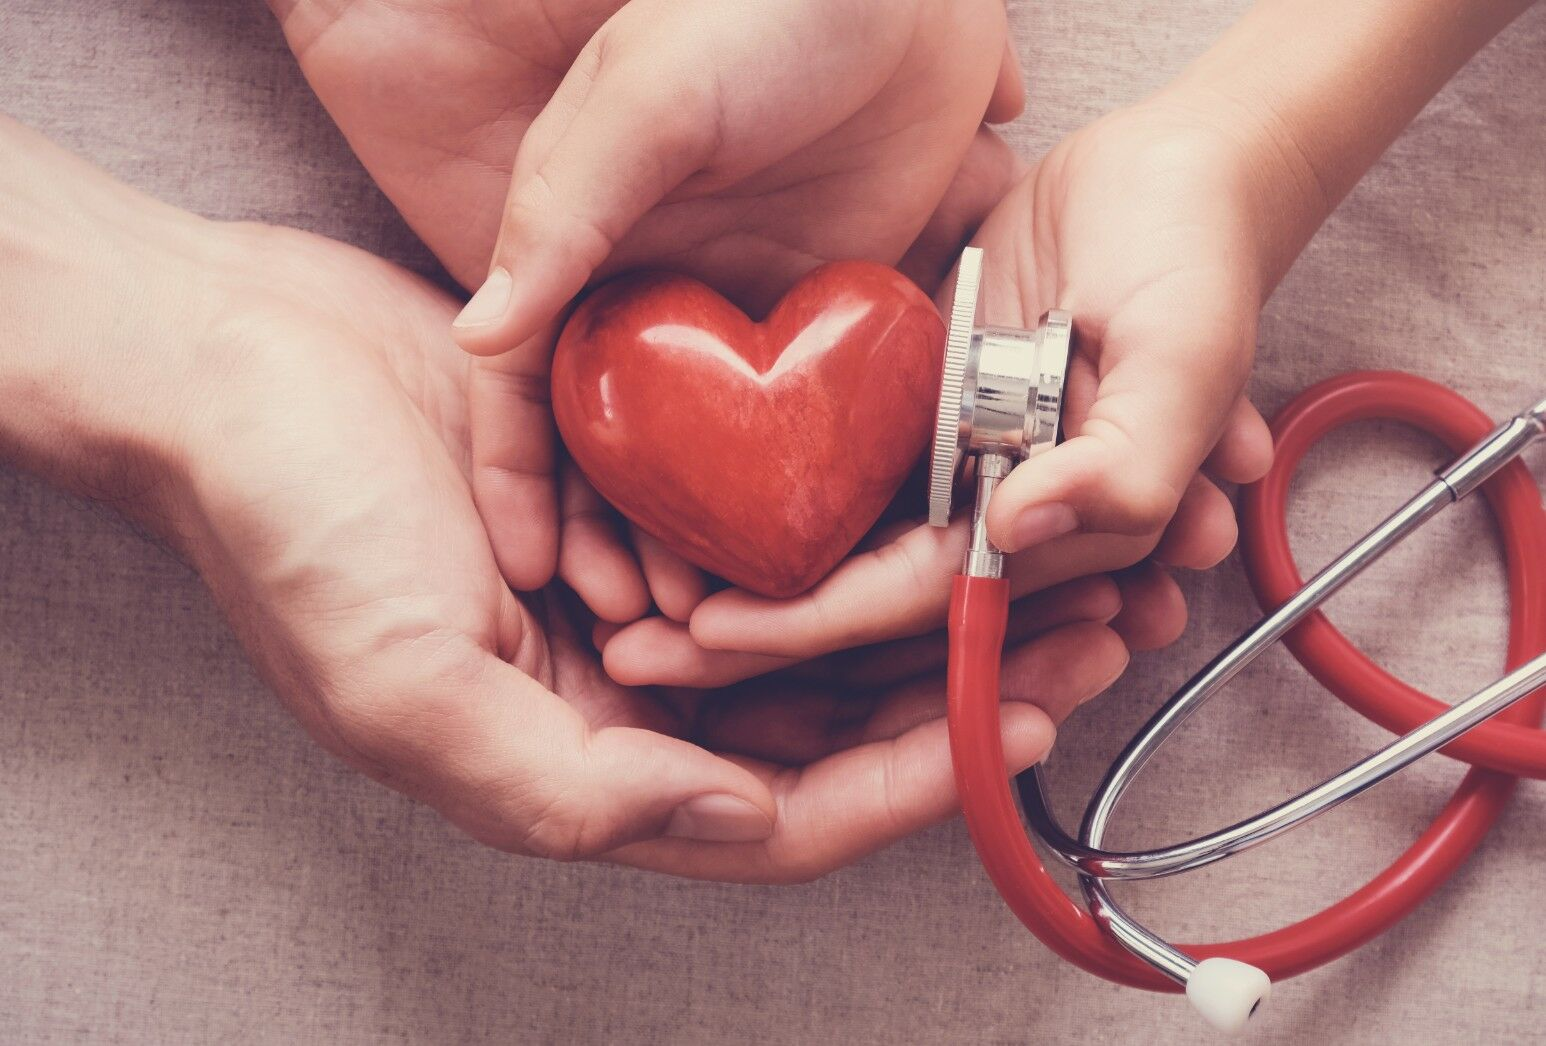 Three sets of different sized hands tenderly hold a wooden heart and a stethoscope.